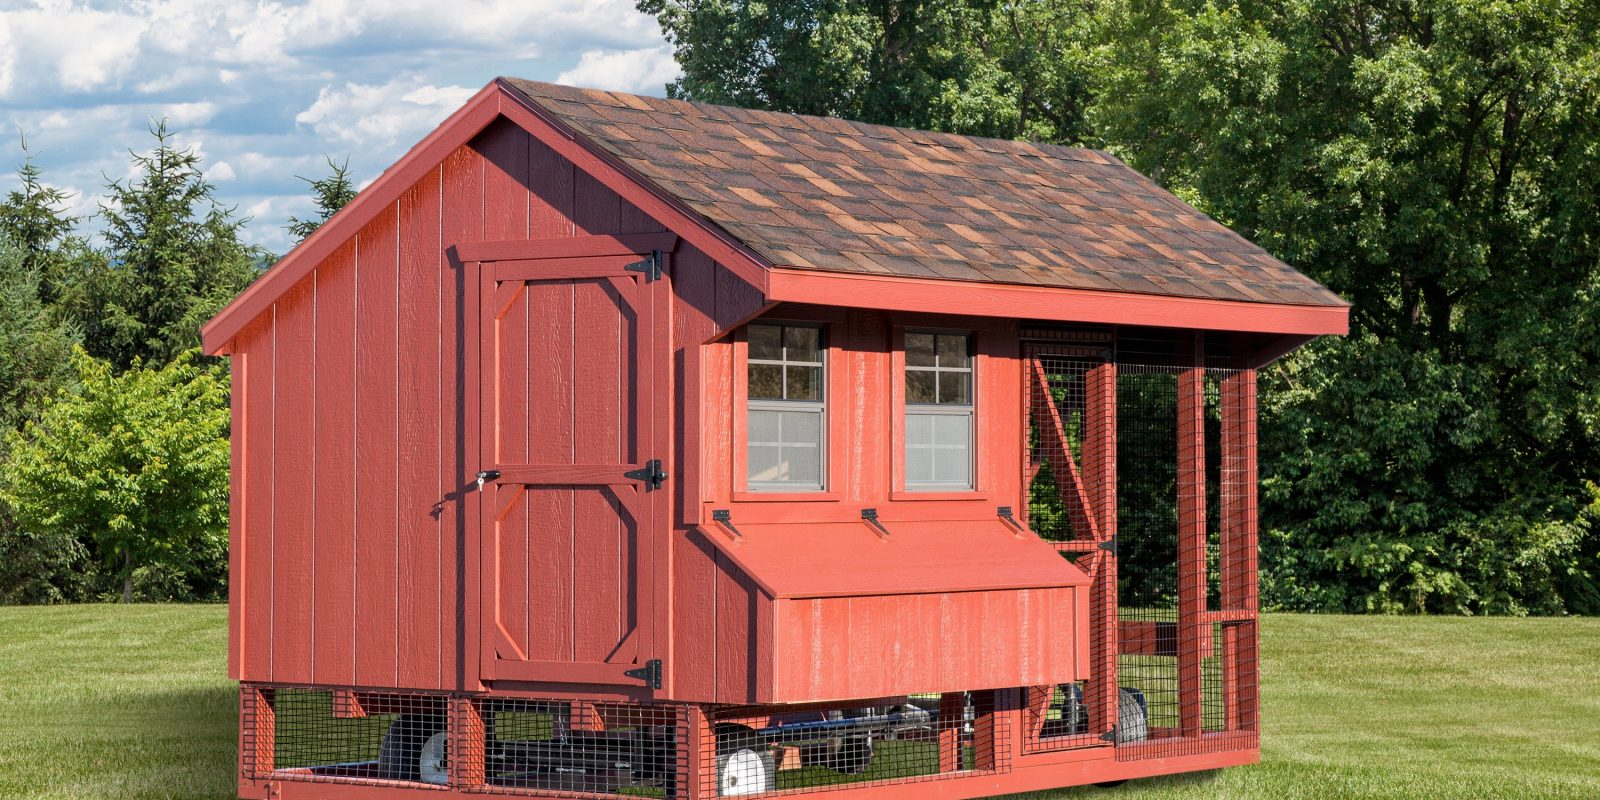 A wooden chicken coop for raising backyard chickens